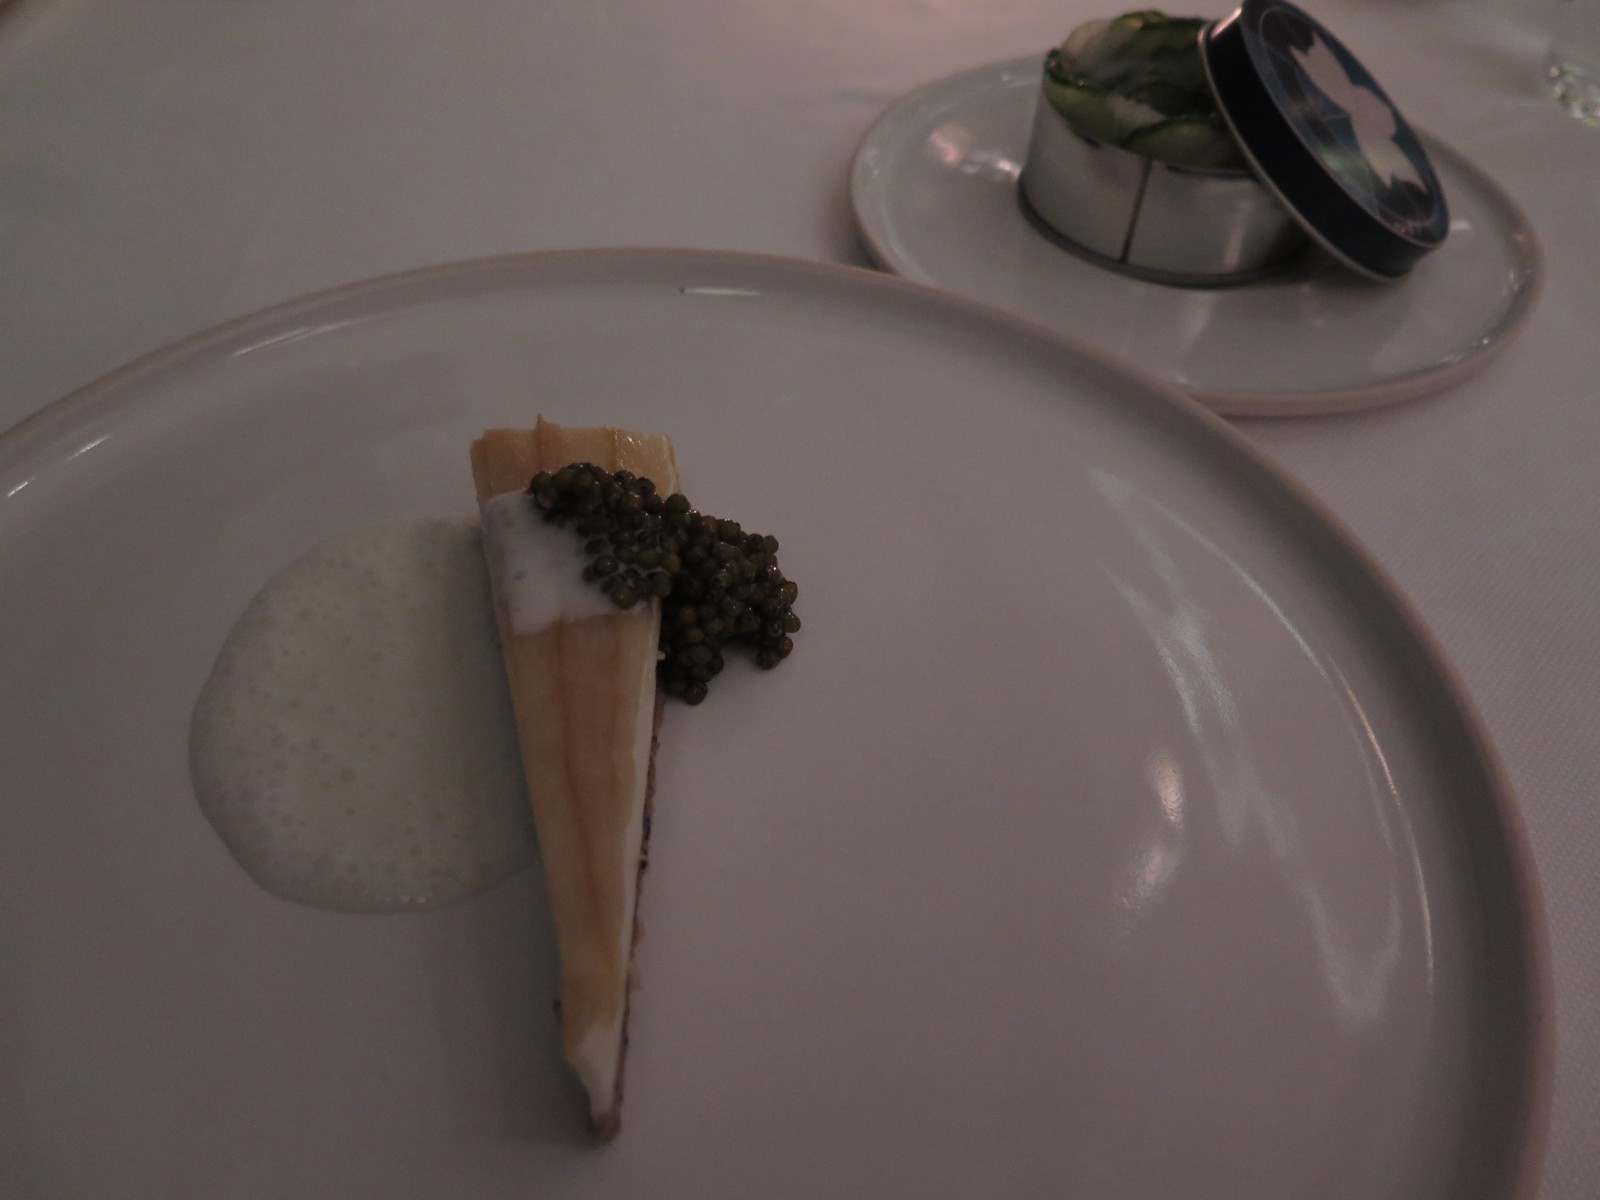 CHEESECAKE with Sturgeon, Caviar, Everything Bagel and Pickles